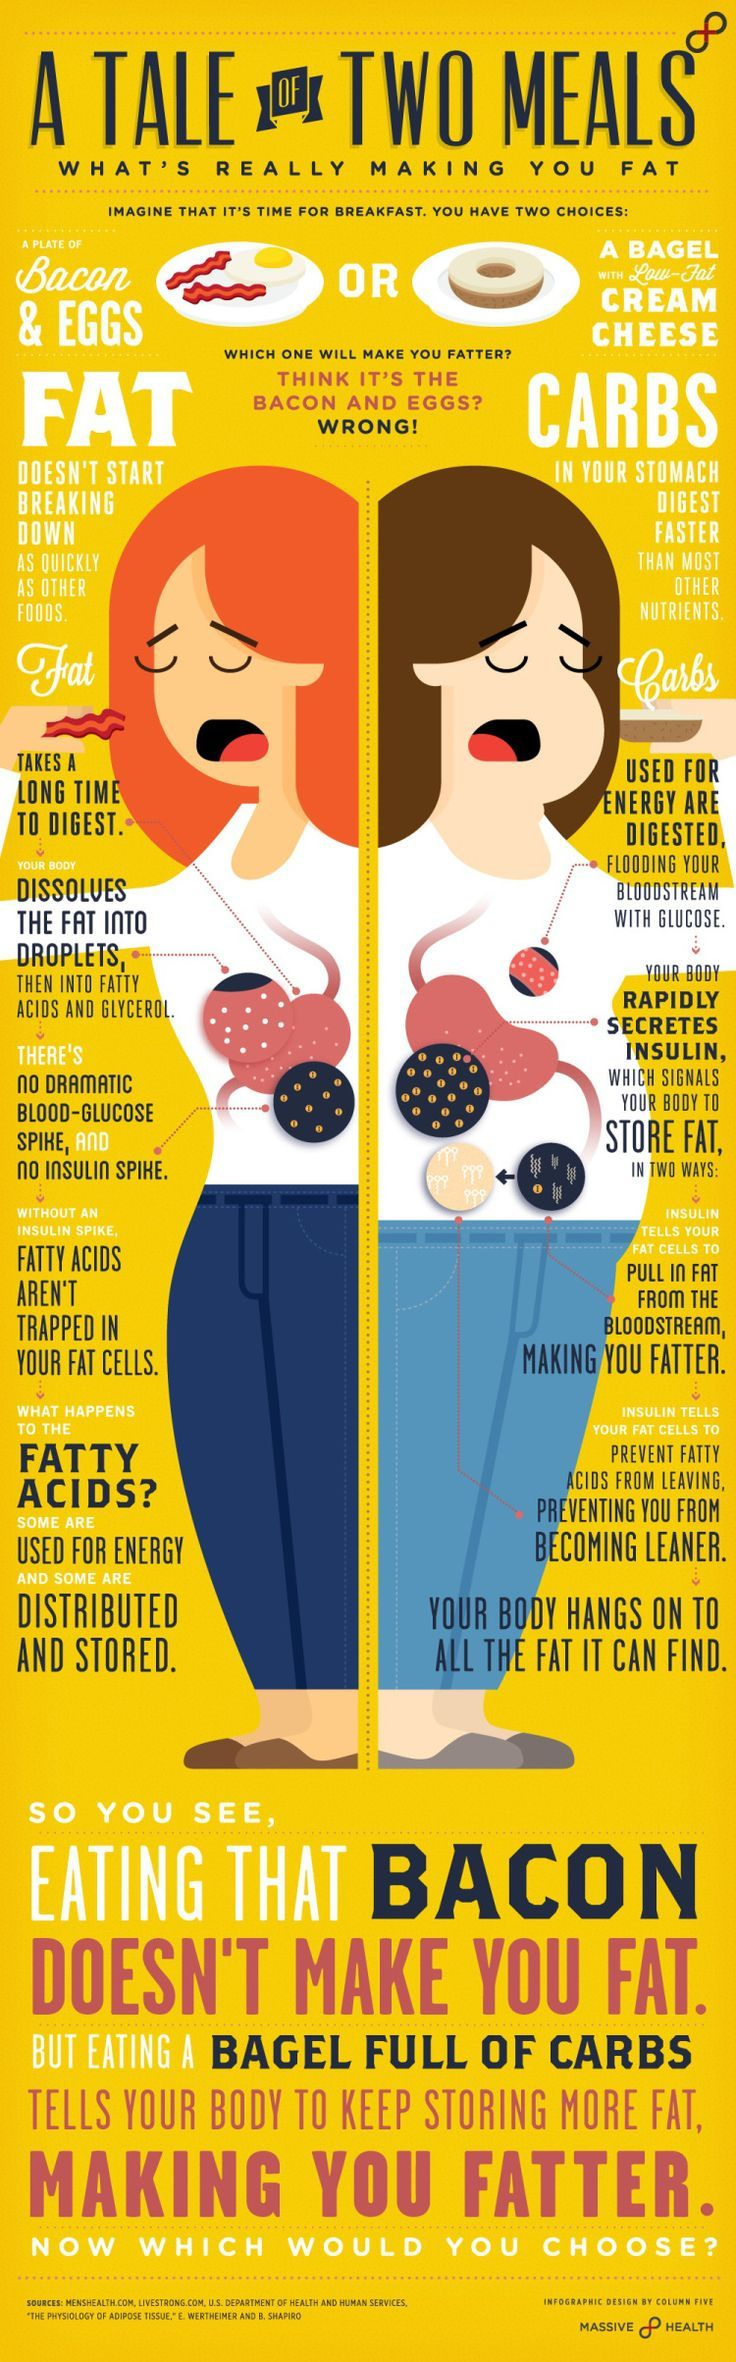 A Tale of Two Meals.  This is a tale of fatty acids vs. carbs.  Who is making us fat?